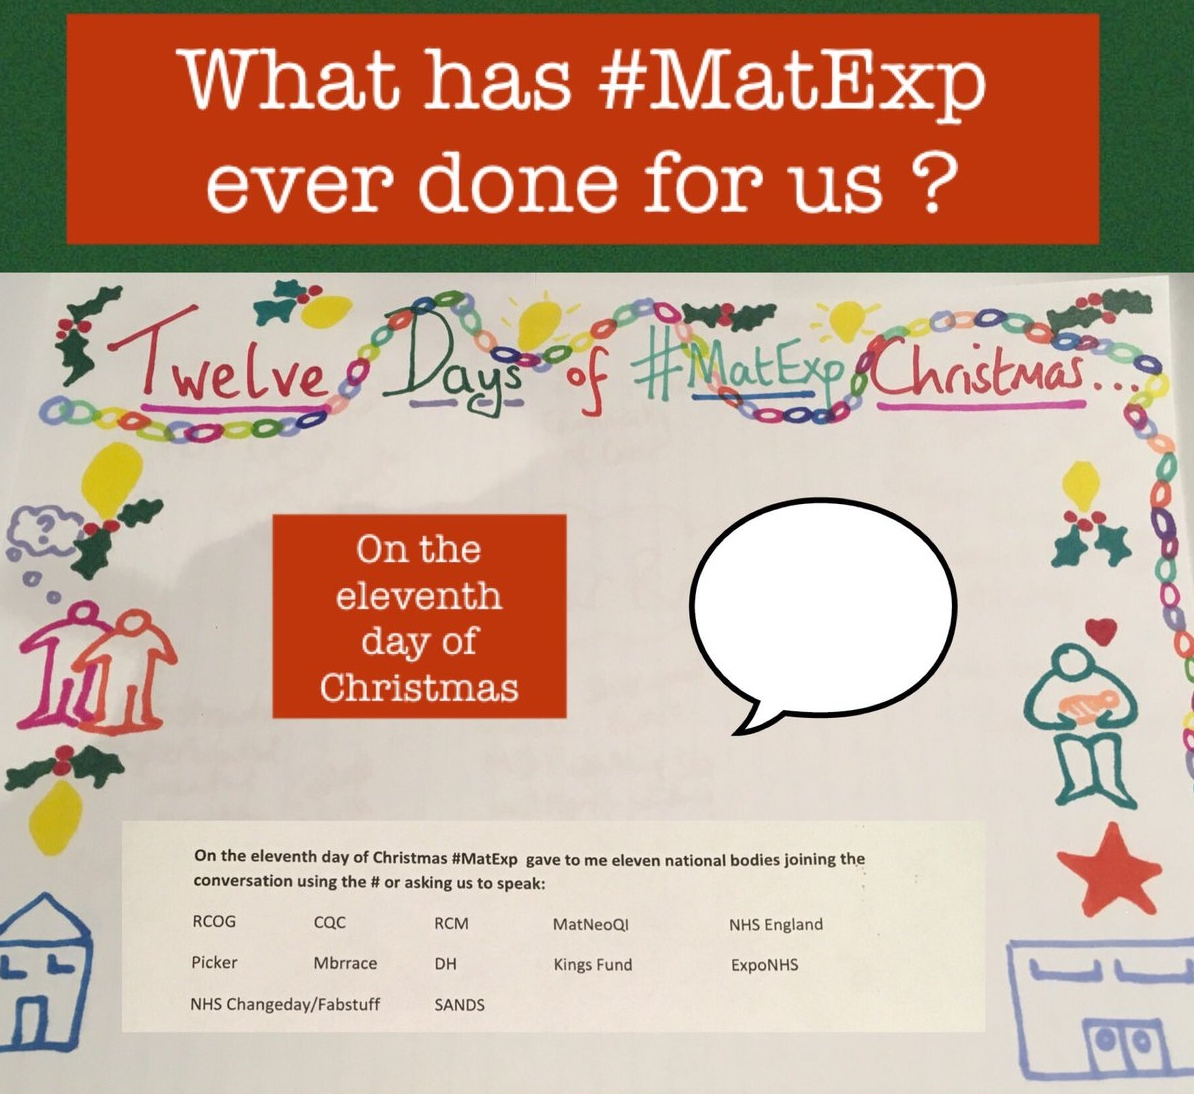 MatExp 12 days of Christmas Day 11